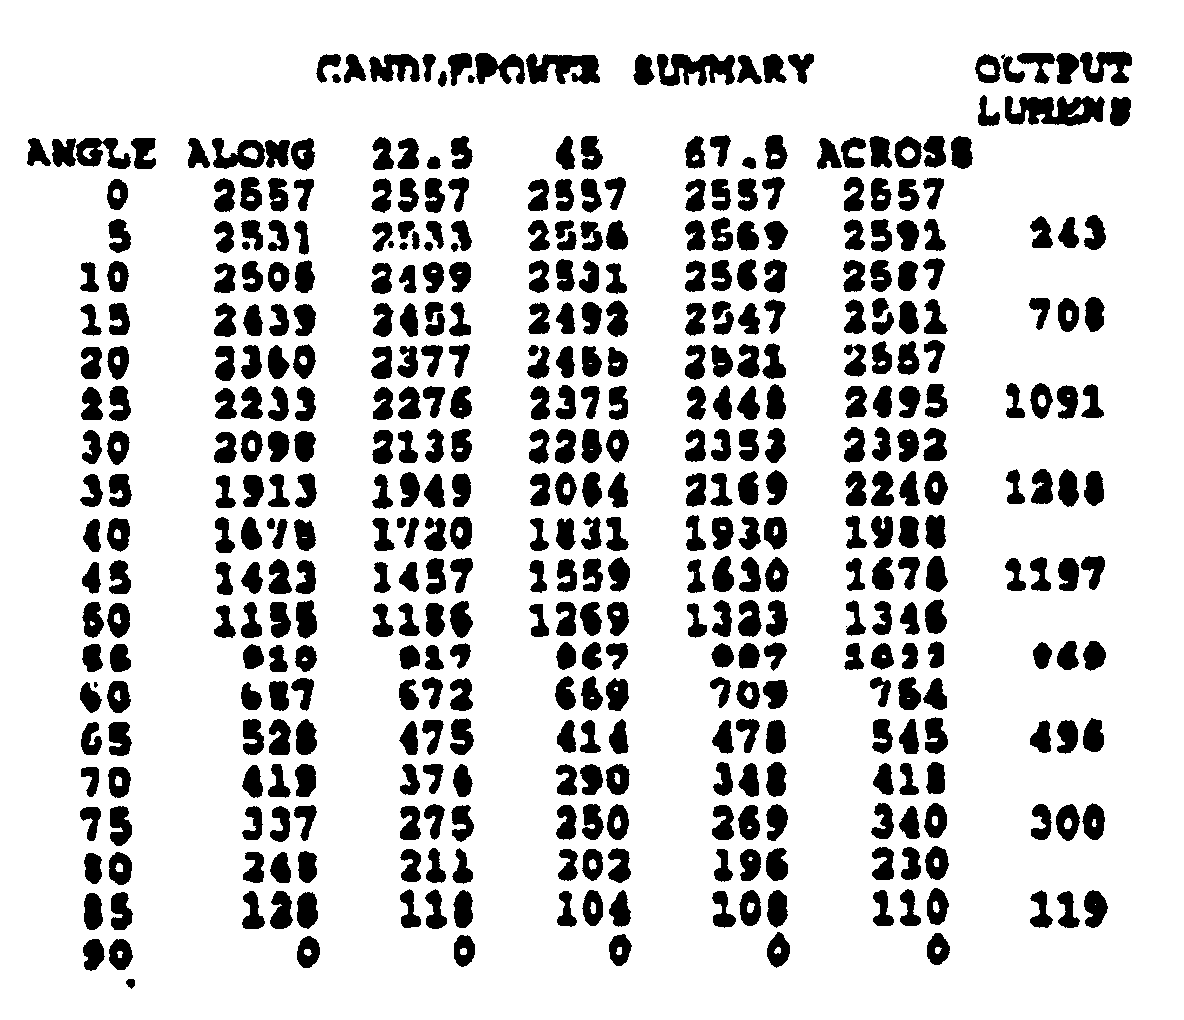 Ohms Conversion Chart The attached chart is a candleOhms Conversion Chart